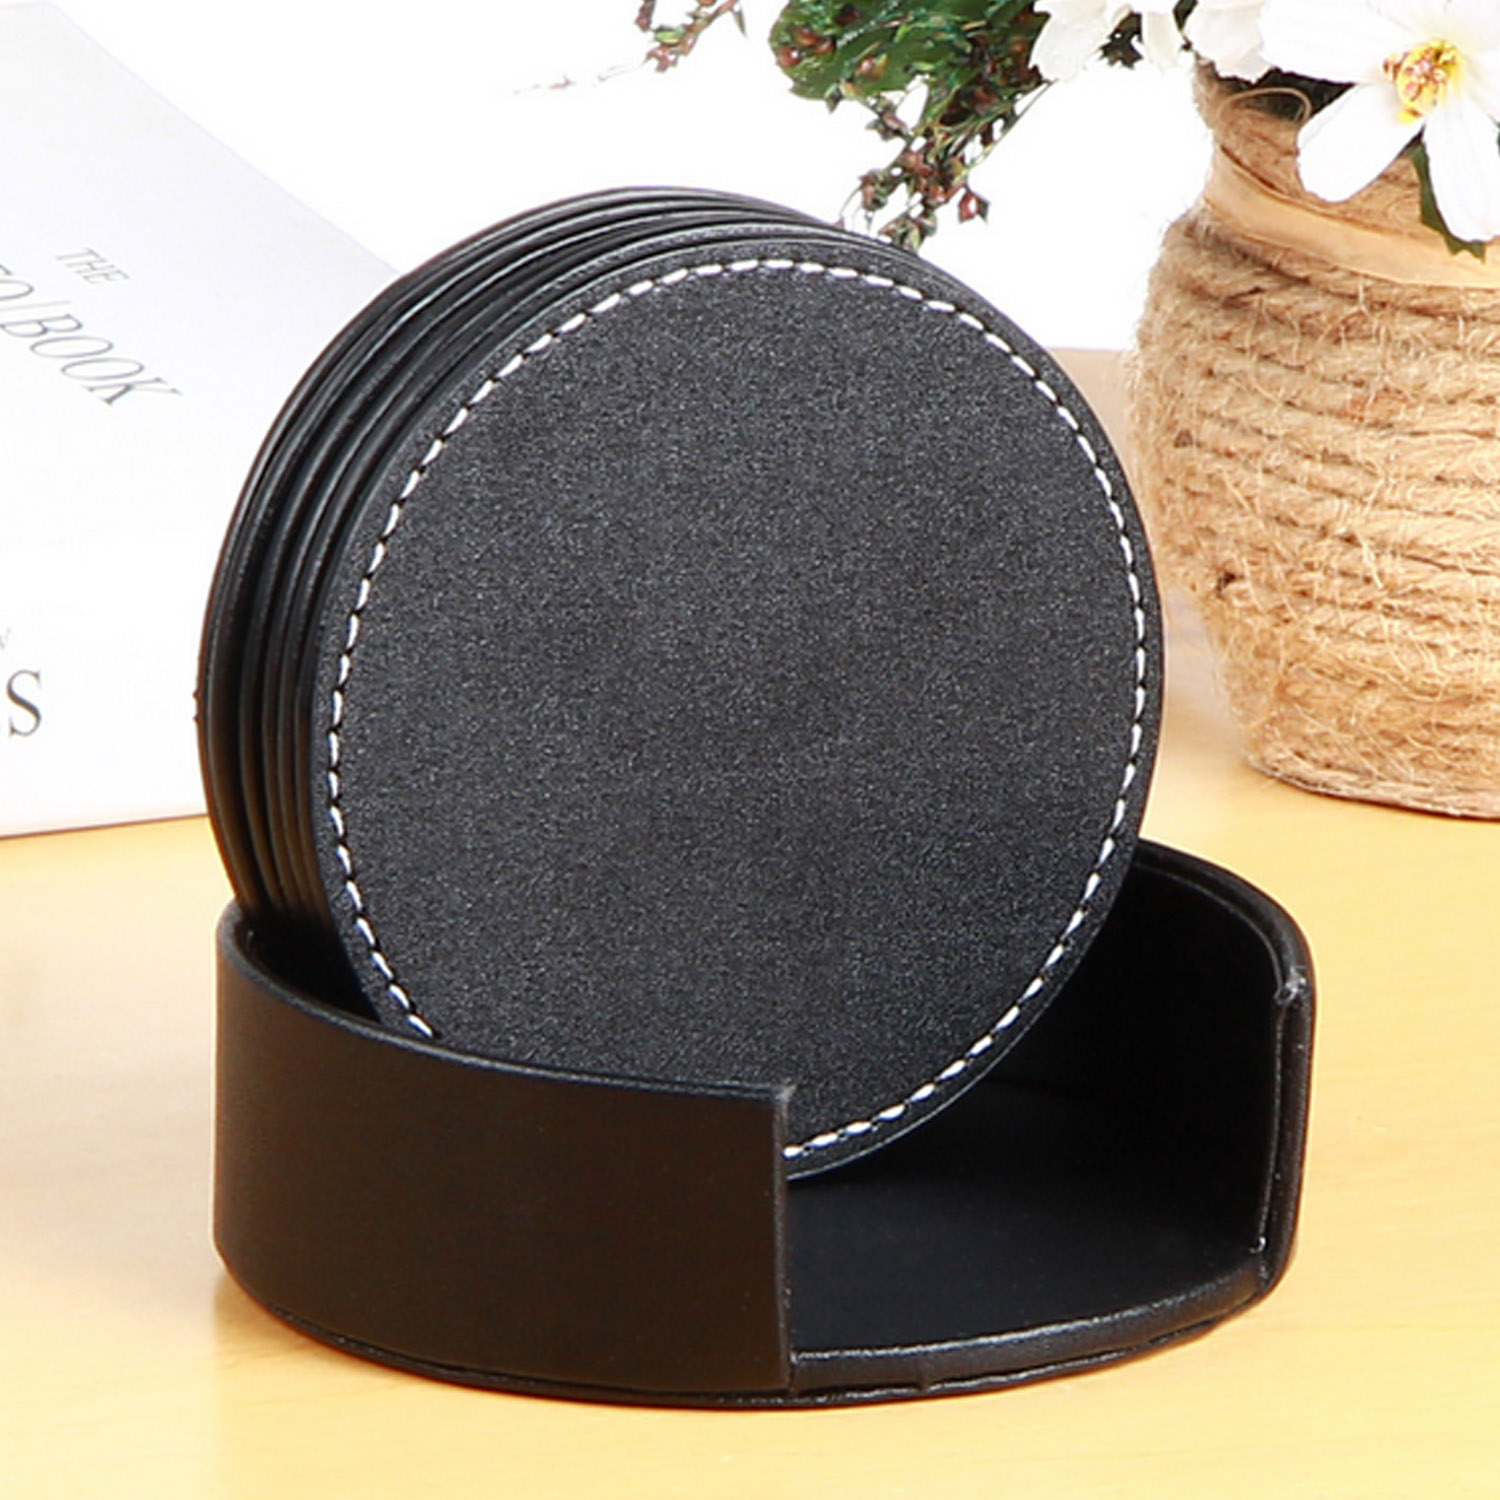 6 PCS Circular PU Leather Coasters Table Mat Pad for Coffee Tea Home Cafe Restaurant Hotel Decor Drink Cup Placemat Tableware